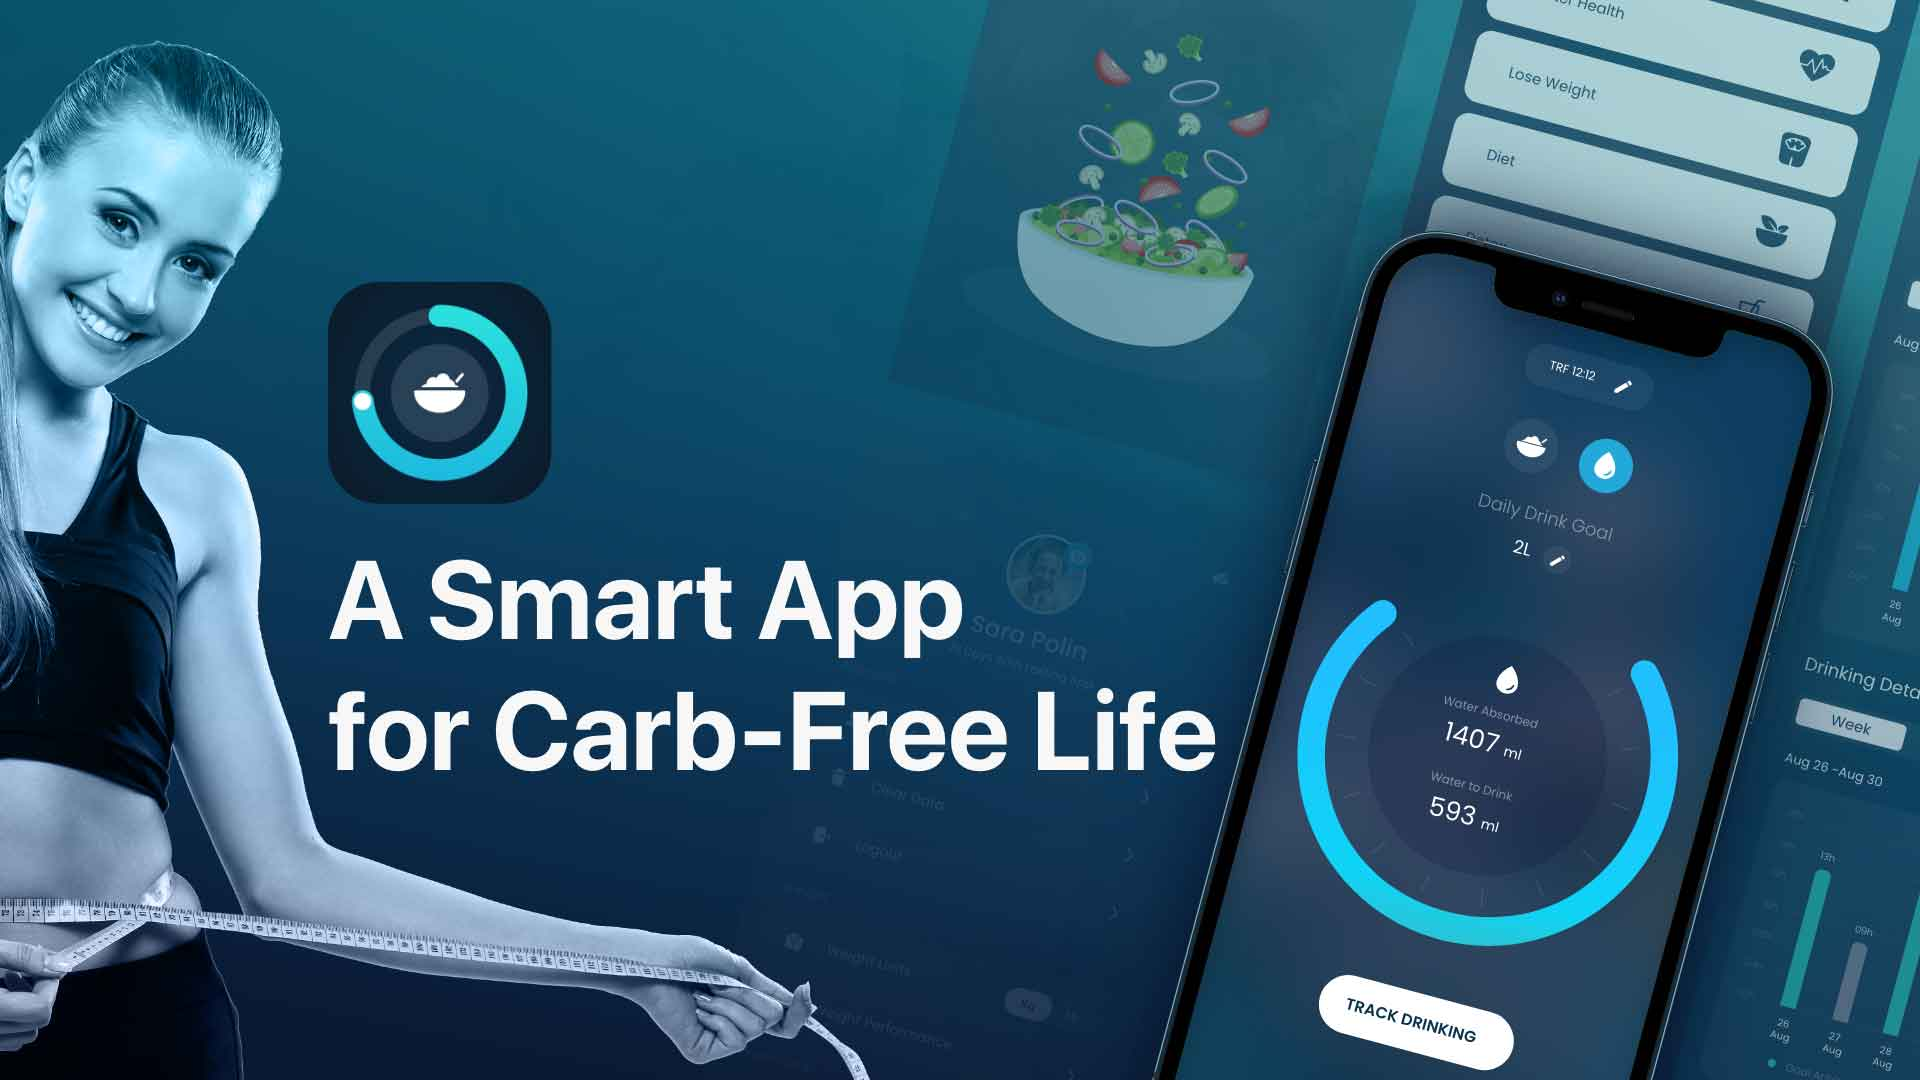 Banner image showing healthy foods background and app interface